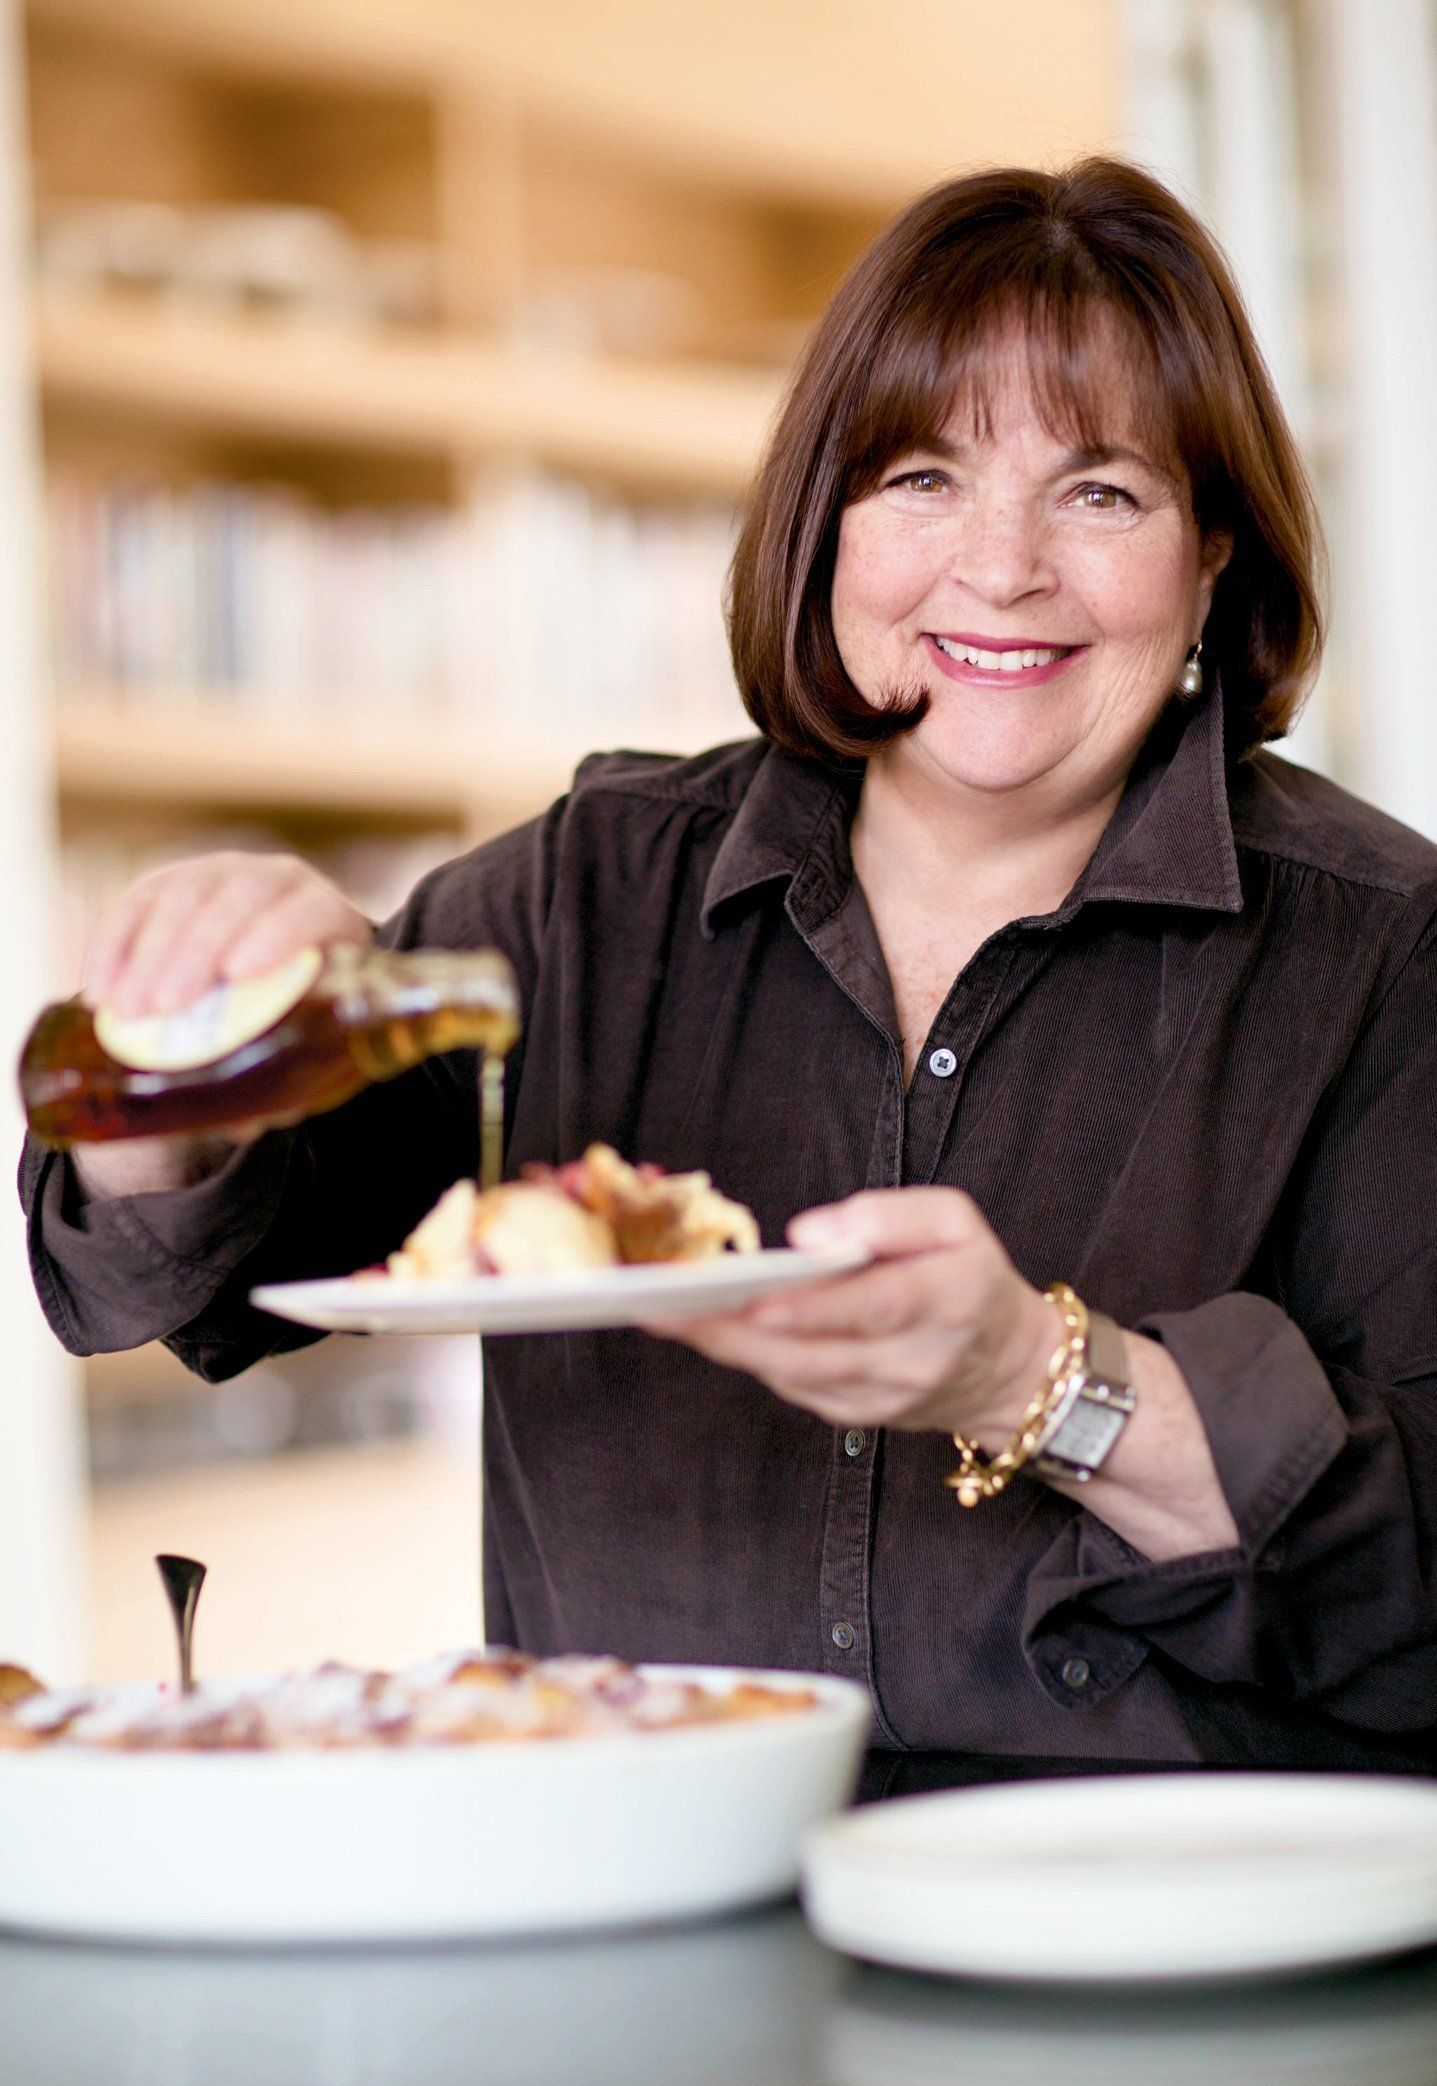 Ina Garten Recipes We Asked Ina Garten For Her Best Dinner Party Advice